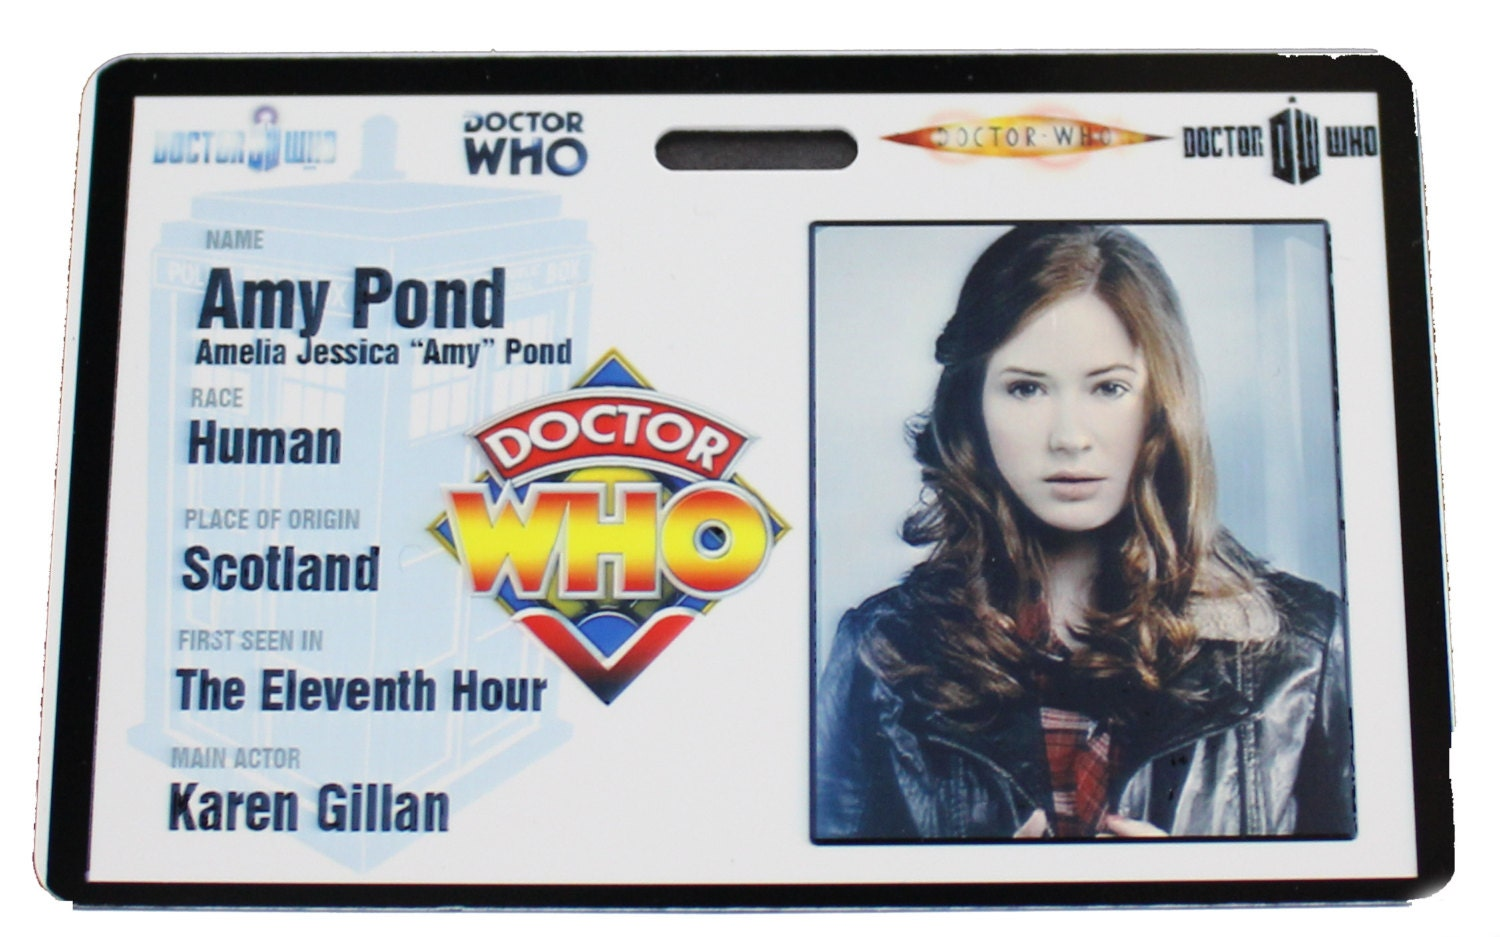 Amy Pond Sex Stories Cool doctor who amy pond prop id badge